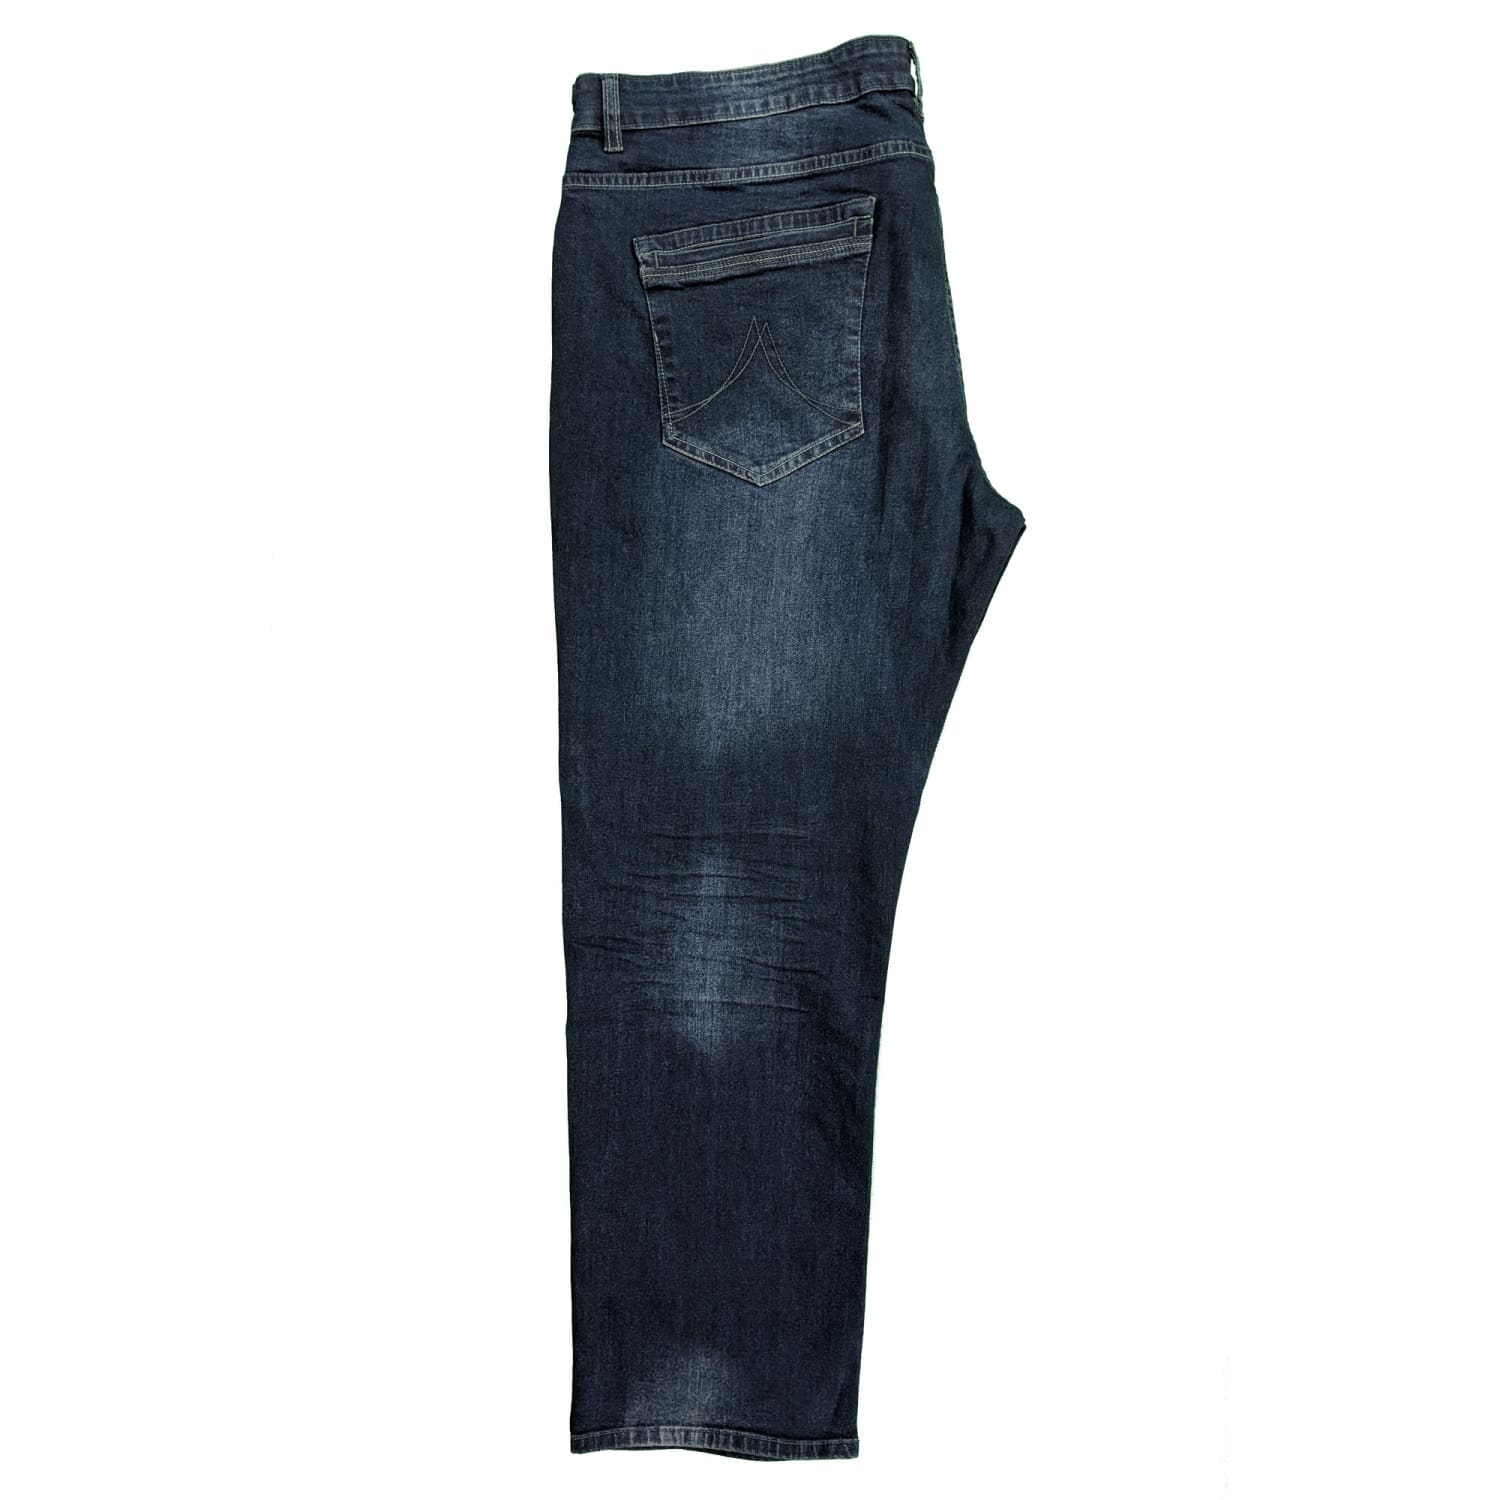 52 46 50 44 Mish Mash Buzz 1987 Washed Denim Jeans in 42 48